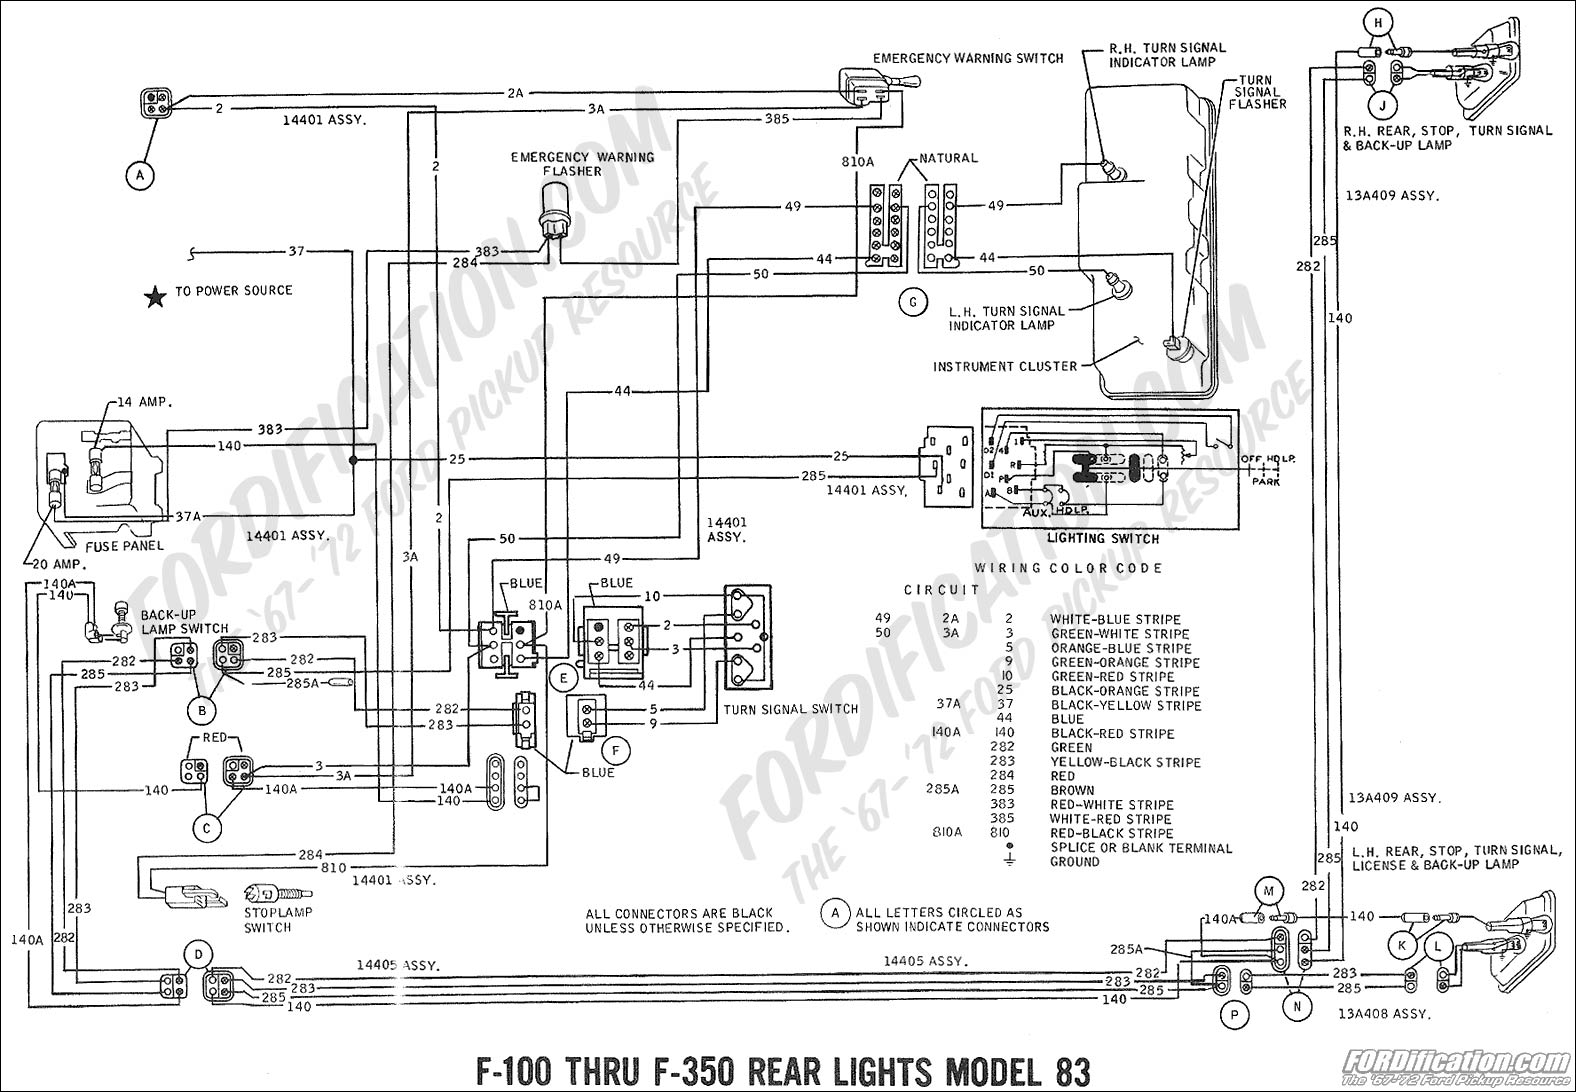 ford truck technical drawings and schematics section h wiring rh  fordification com 1969 Mustang Fuse Box Diagram 1969 Mustang Wiring Harness